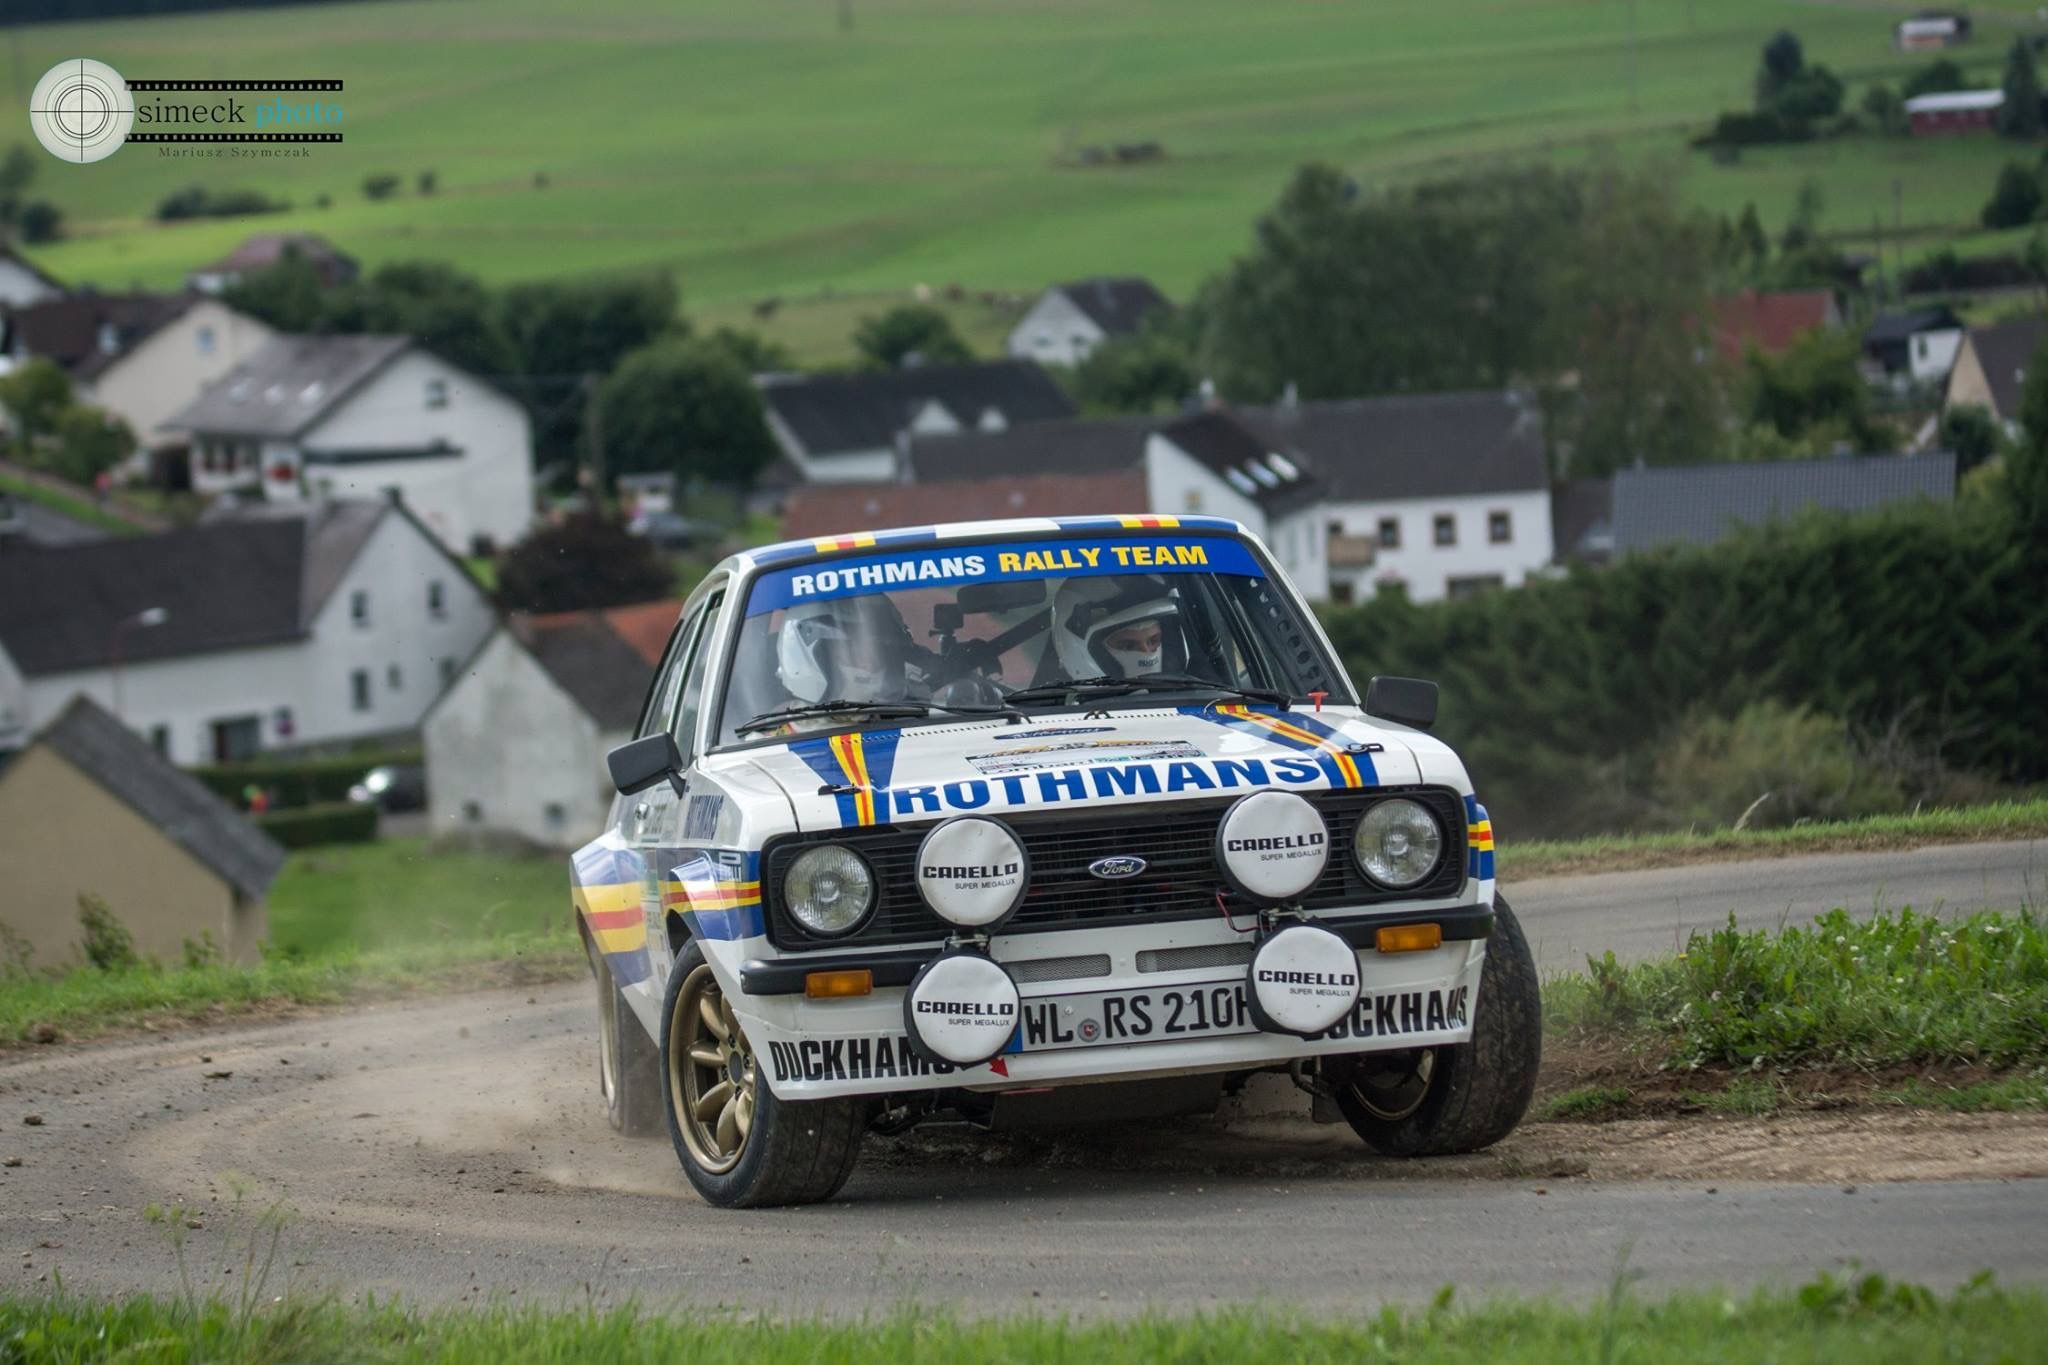 Pin by Gkigkinos on Rally | Pinterest | Rally, Rally car and Ford escort